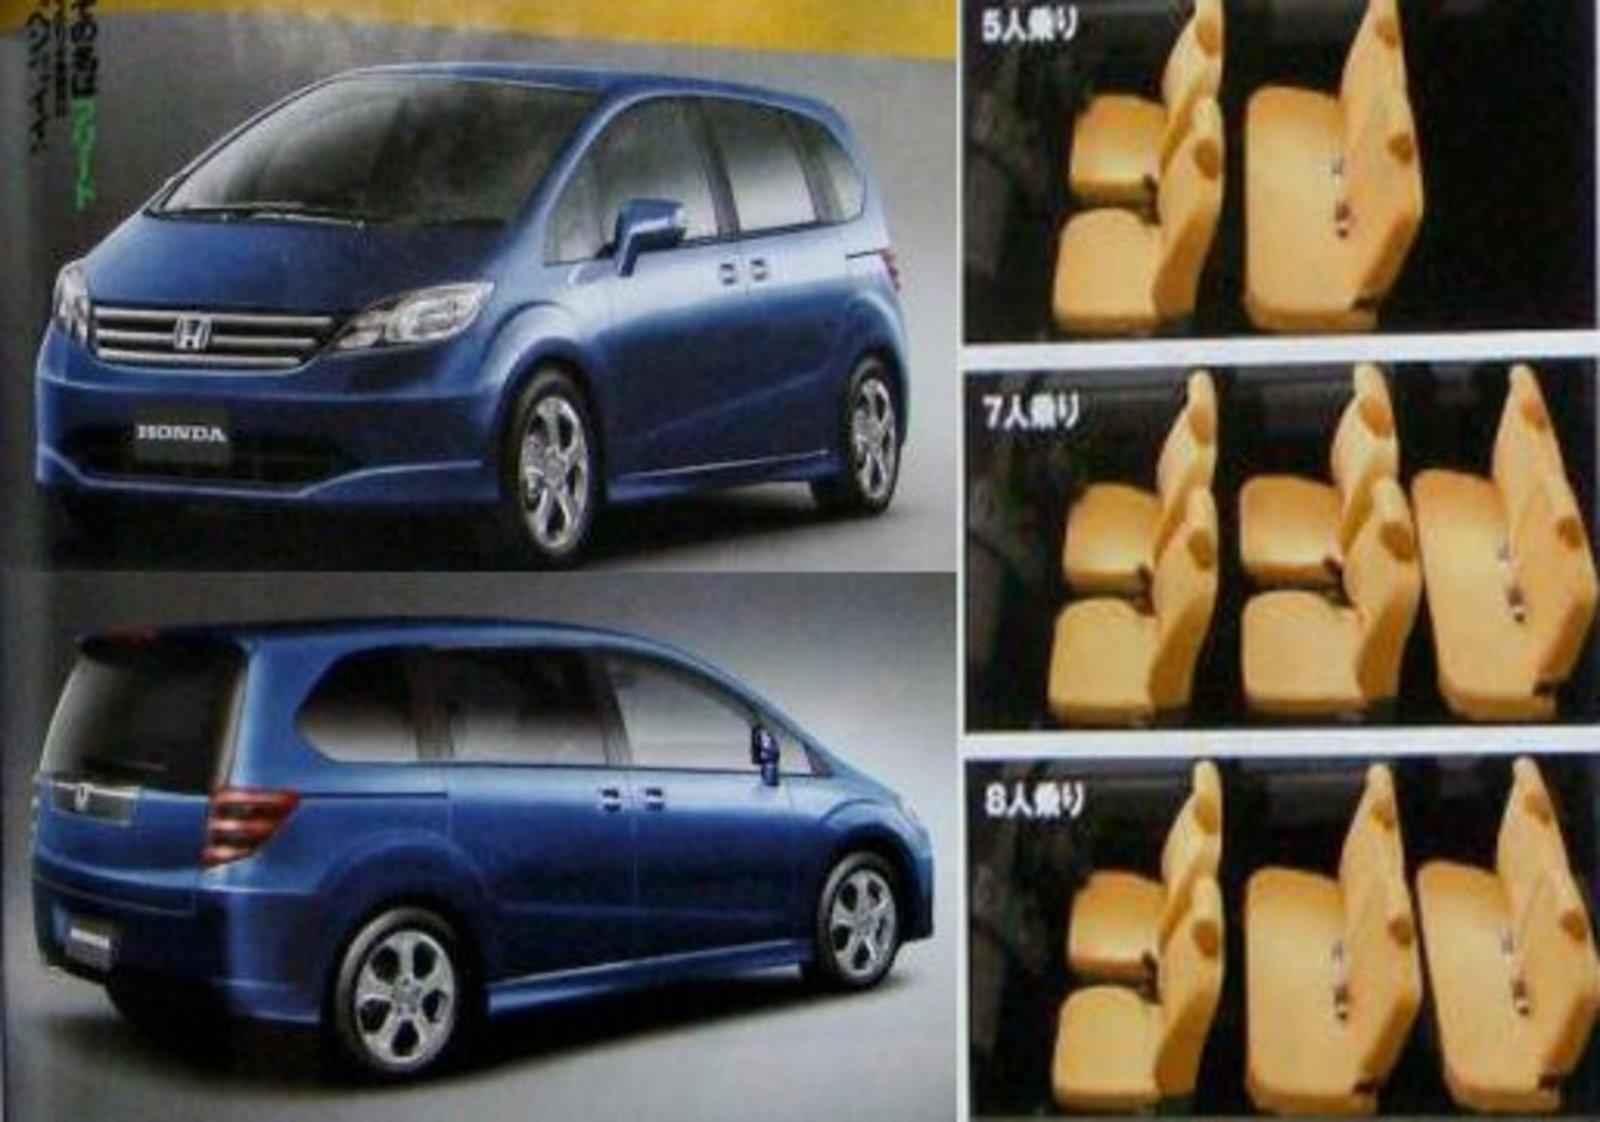 Cars With 3 Rows Of Seats >> 2009 Honda Freed To Be Released Next Week News - Top Speed